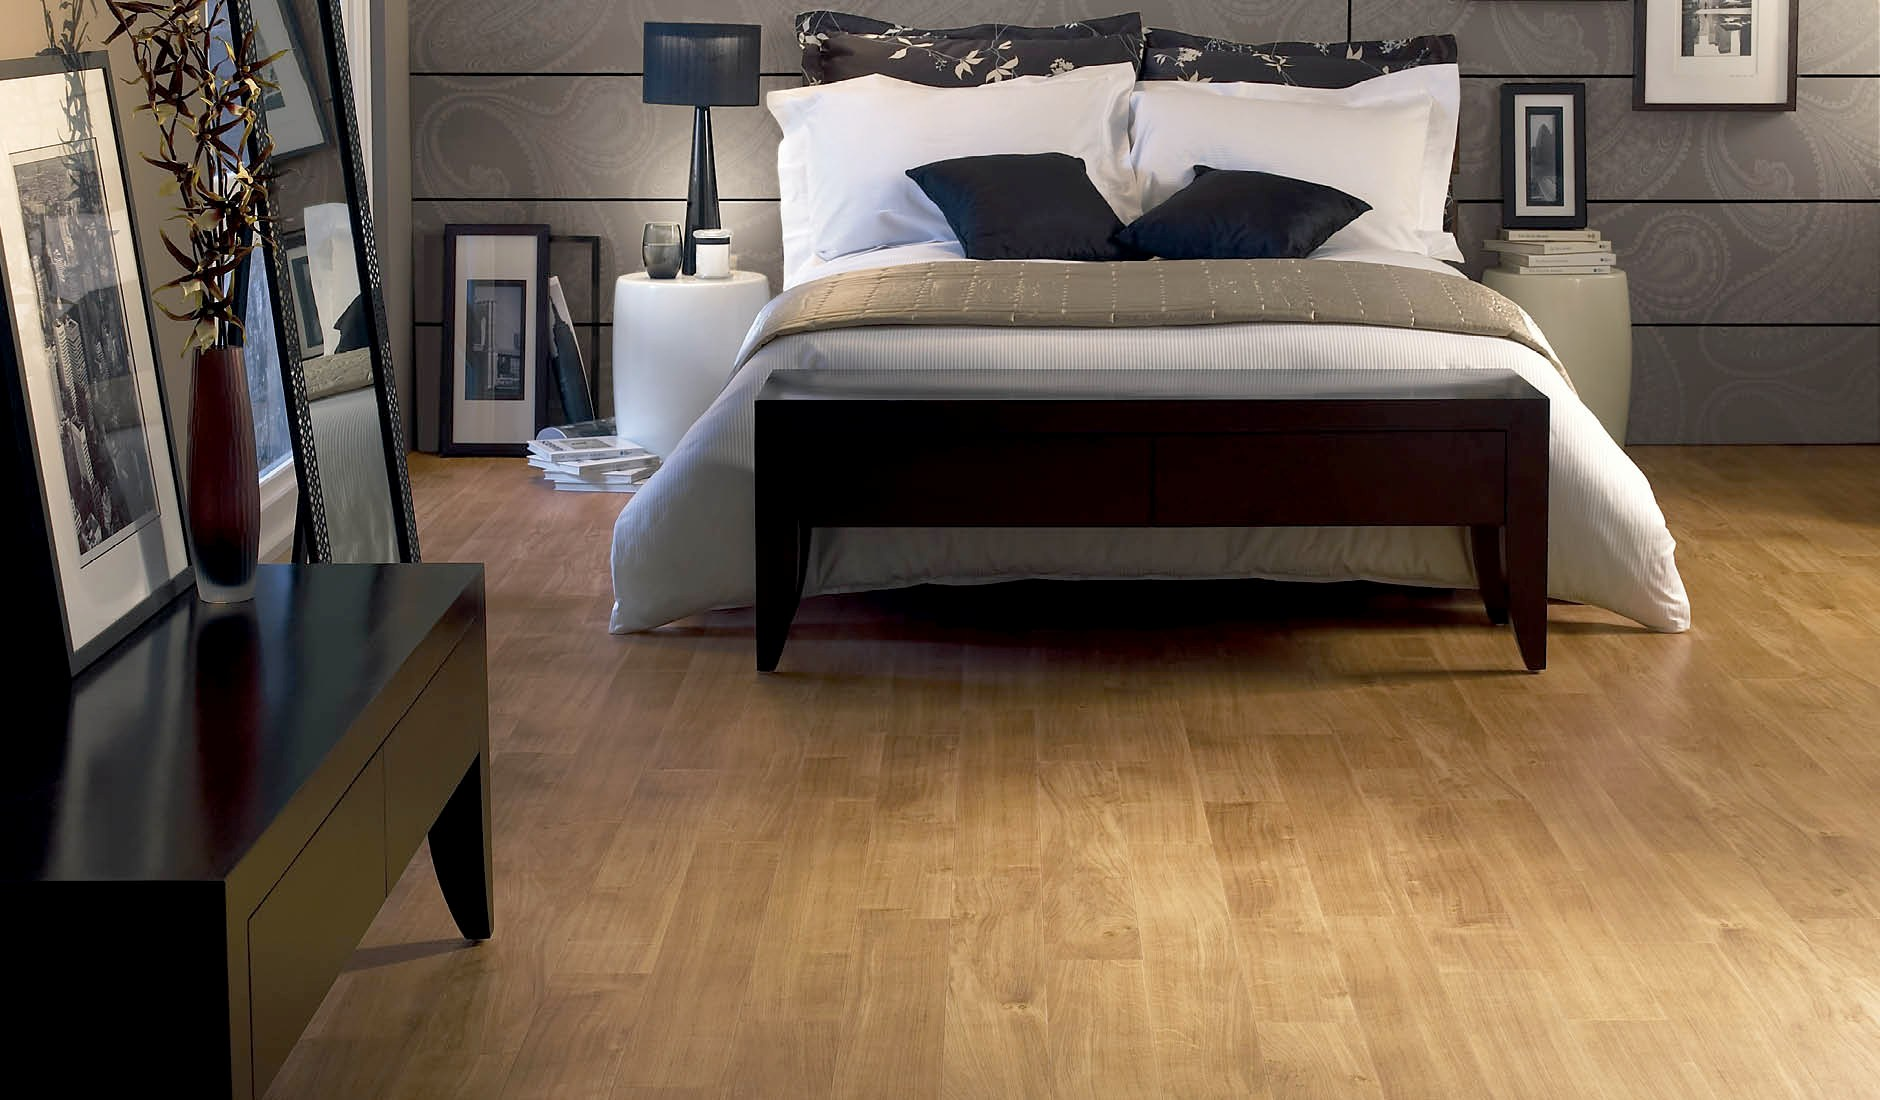 hardwood floors in bedroom home decorating bedroom wooden floor design wonderful decorate wood flooring golden CJSBRIK